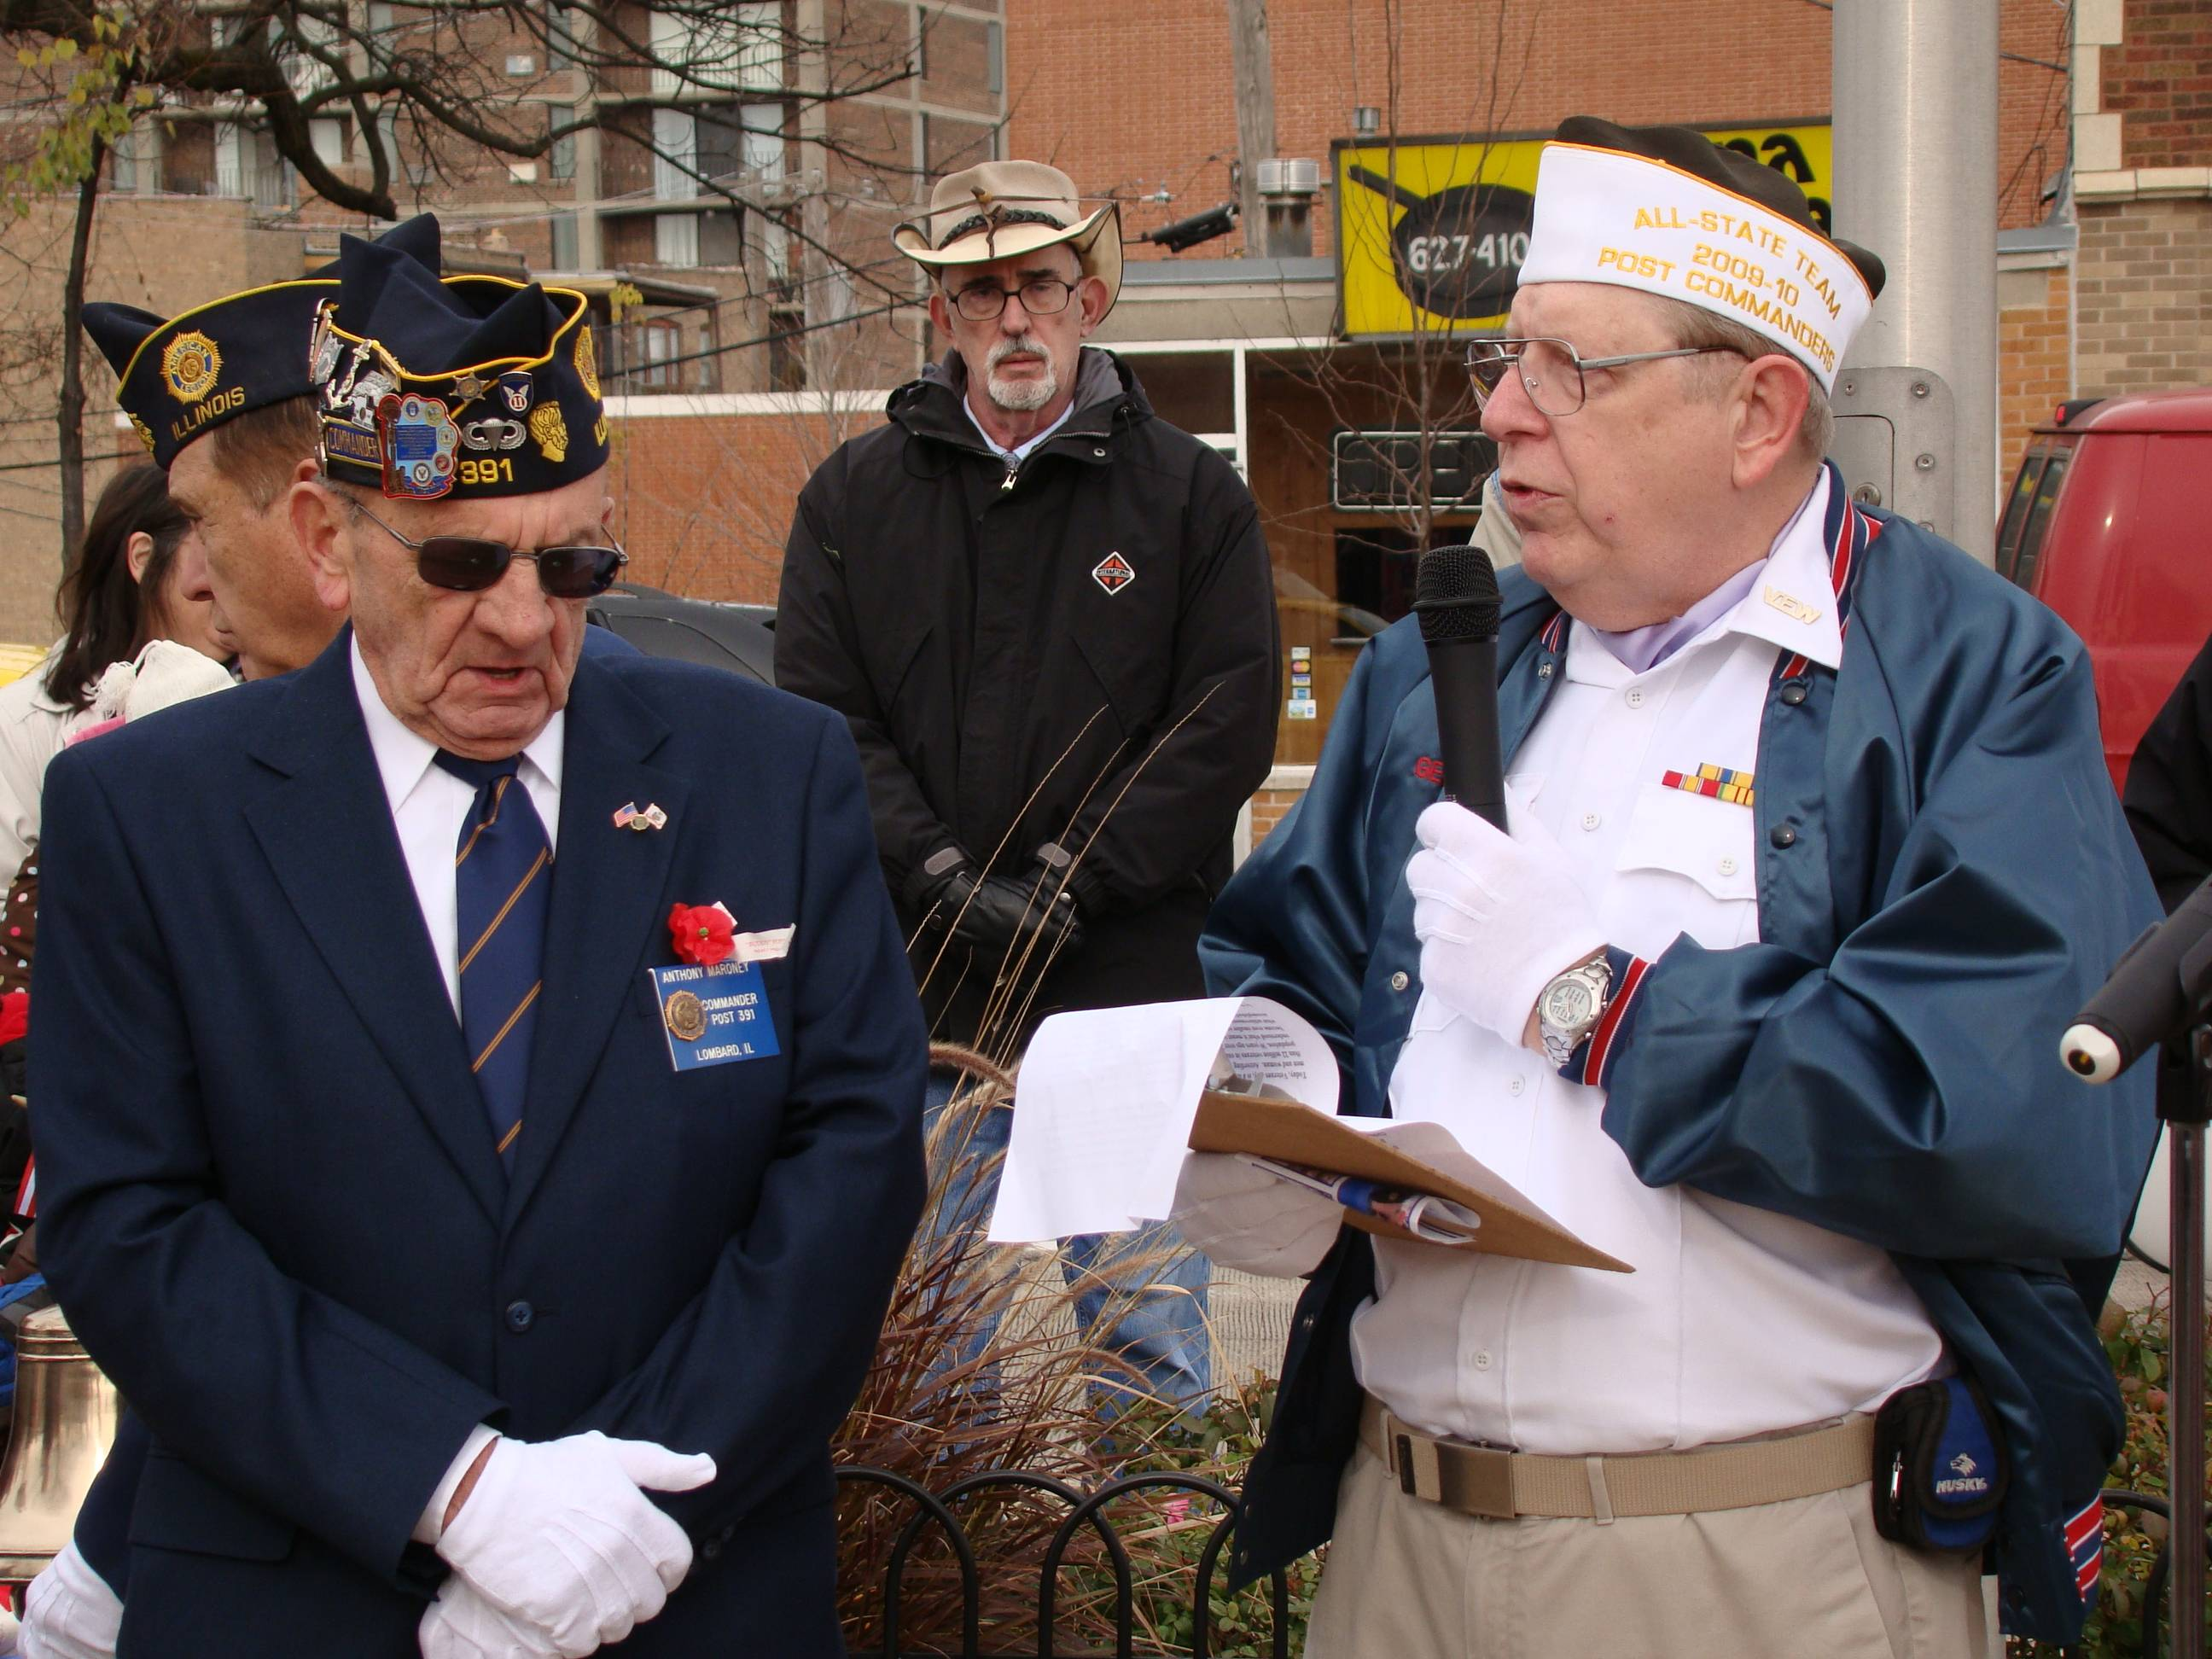 VFW post members Tony Maroney (left) and George Miller have both been instrumental in helping plan the Village of Lombard Veterans' Day ceremonies.